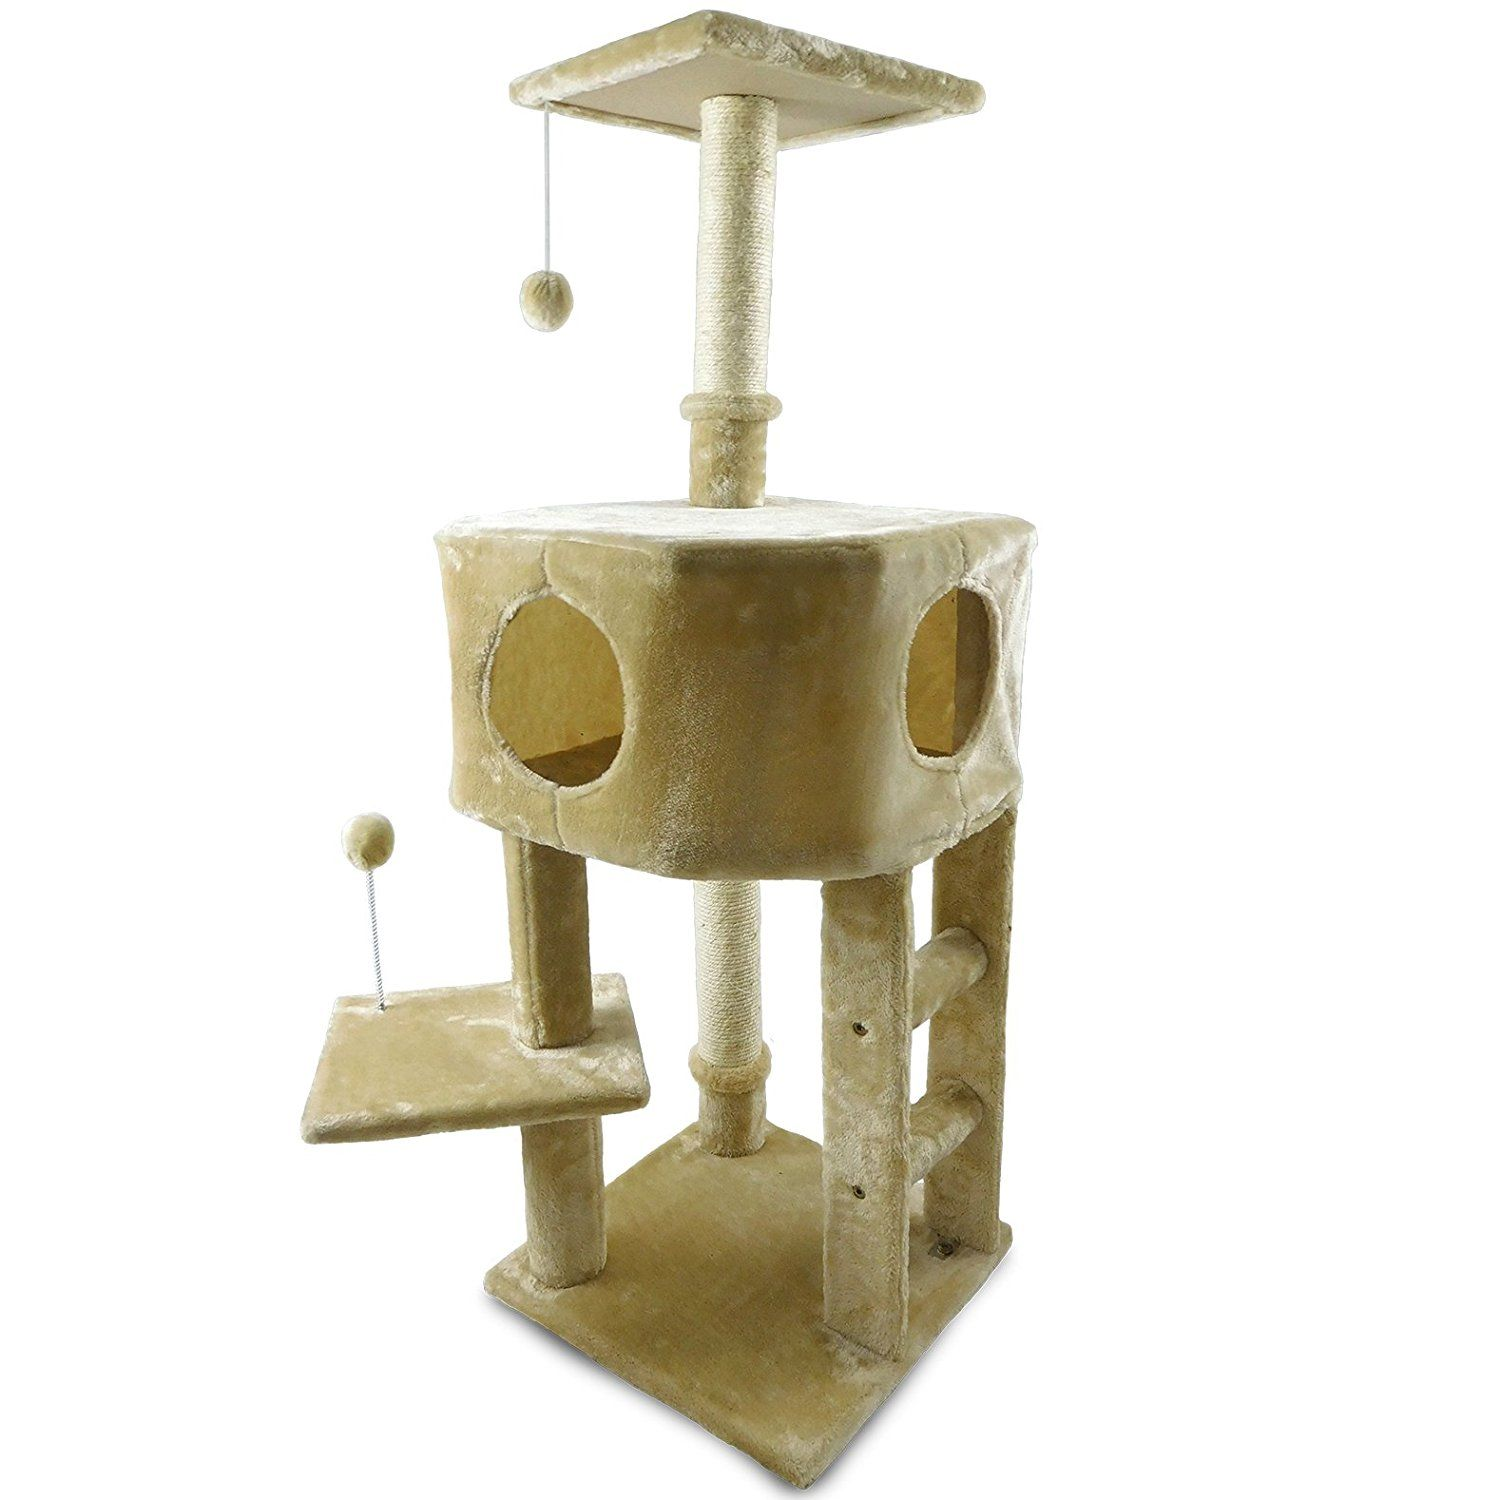 Tiger Tough Cat Tree House Furniture For Kittens And Cats Multiple Color Style Cat Condos 45 To 60 Ta Cat Tree House Modern Cat Tree Cat Playground Outdoor